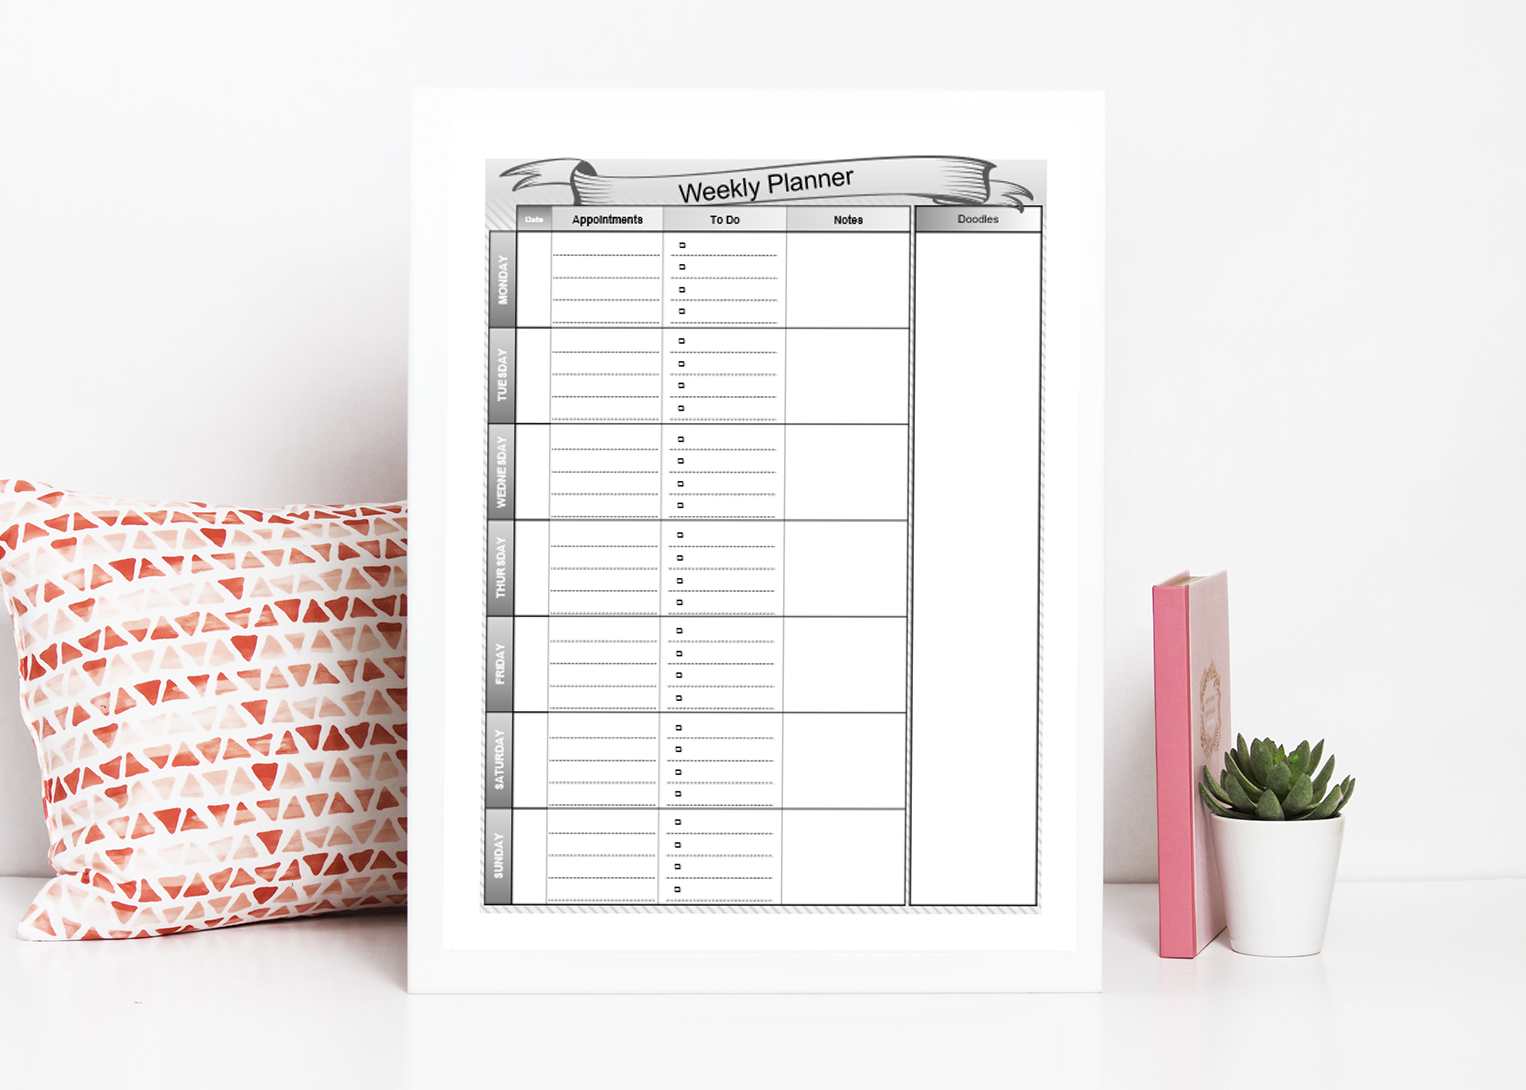 Downloadable Weekly Planners to help you plan out your week, goals, tasks, and other important reminders.